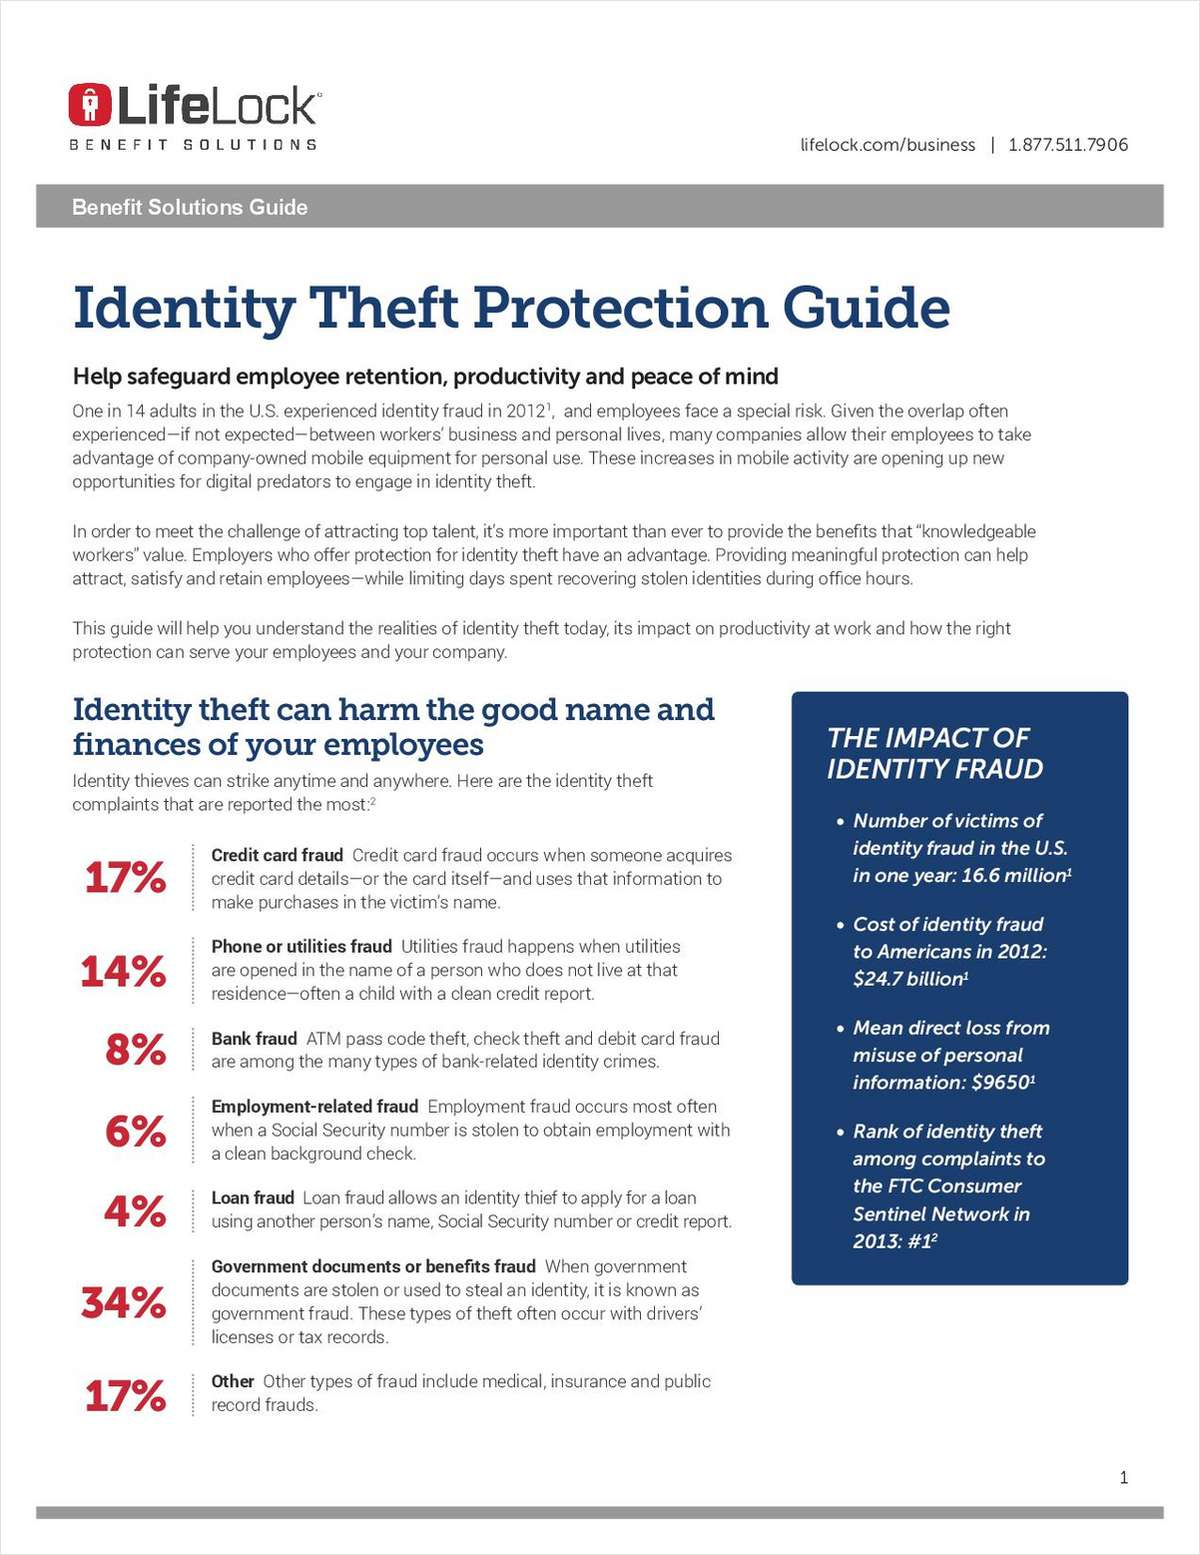 Help Safeguard Your Employee Retention, Productivity and Peace of Mind